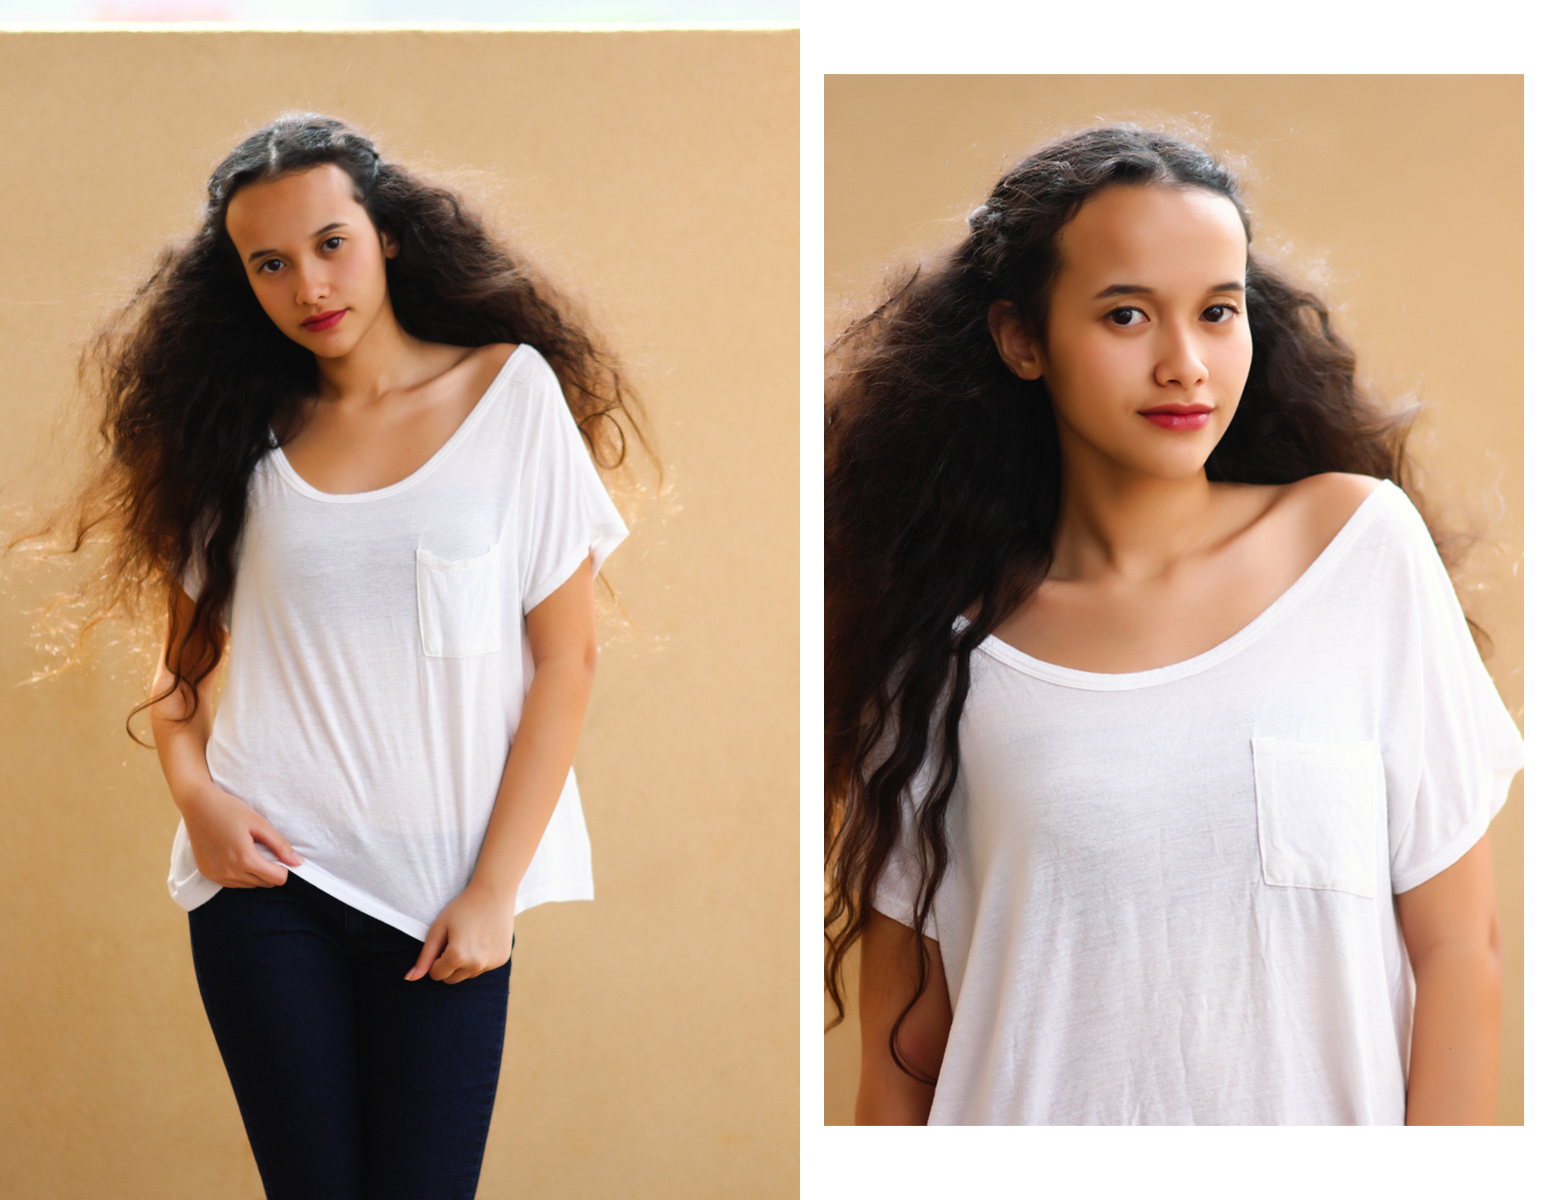 KAUAI PHOTOGRAPHER [the blog]: Maile Taylor Modeling Agency